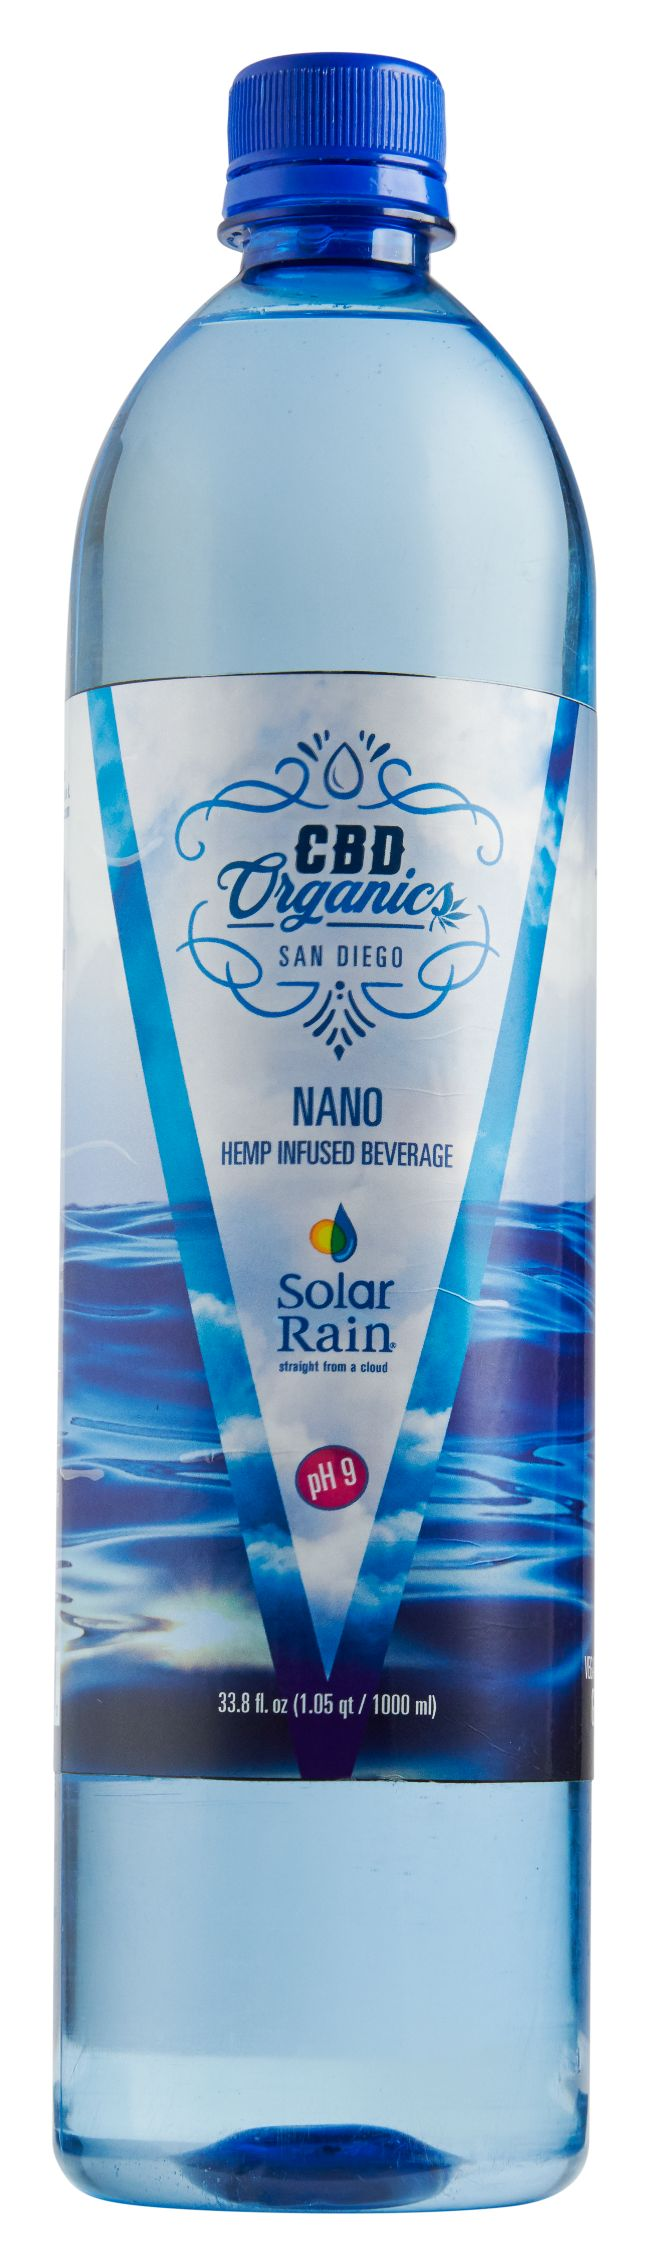 Nano CBD Water 12 pack 1000mL - CBD Organics